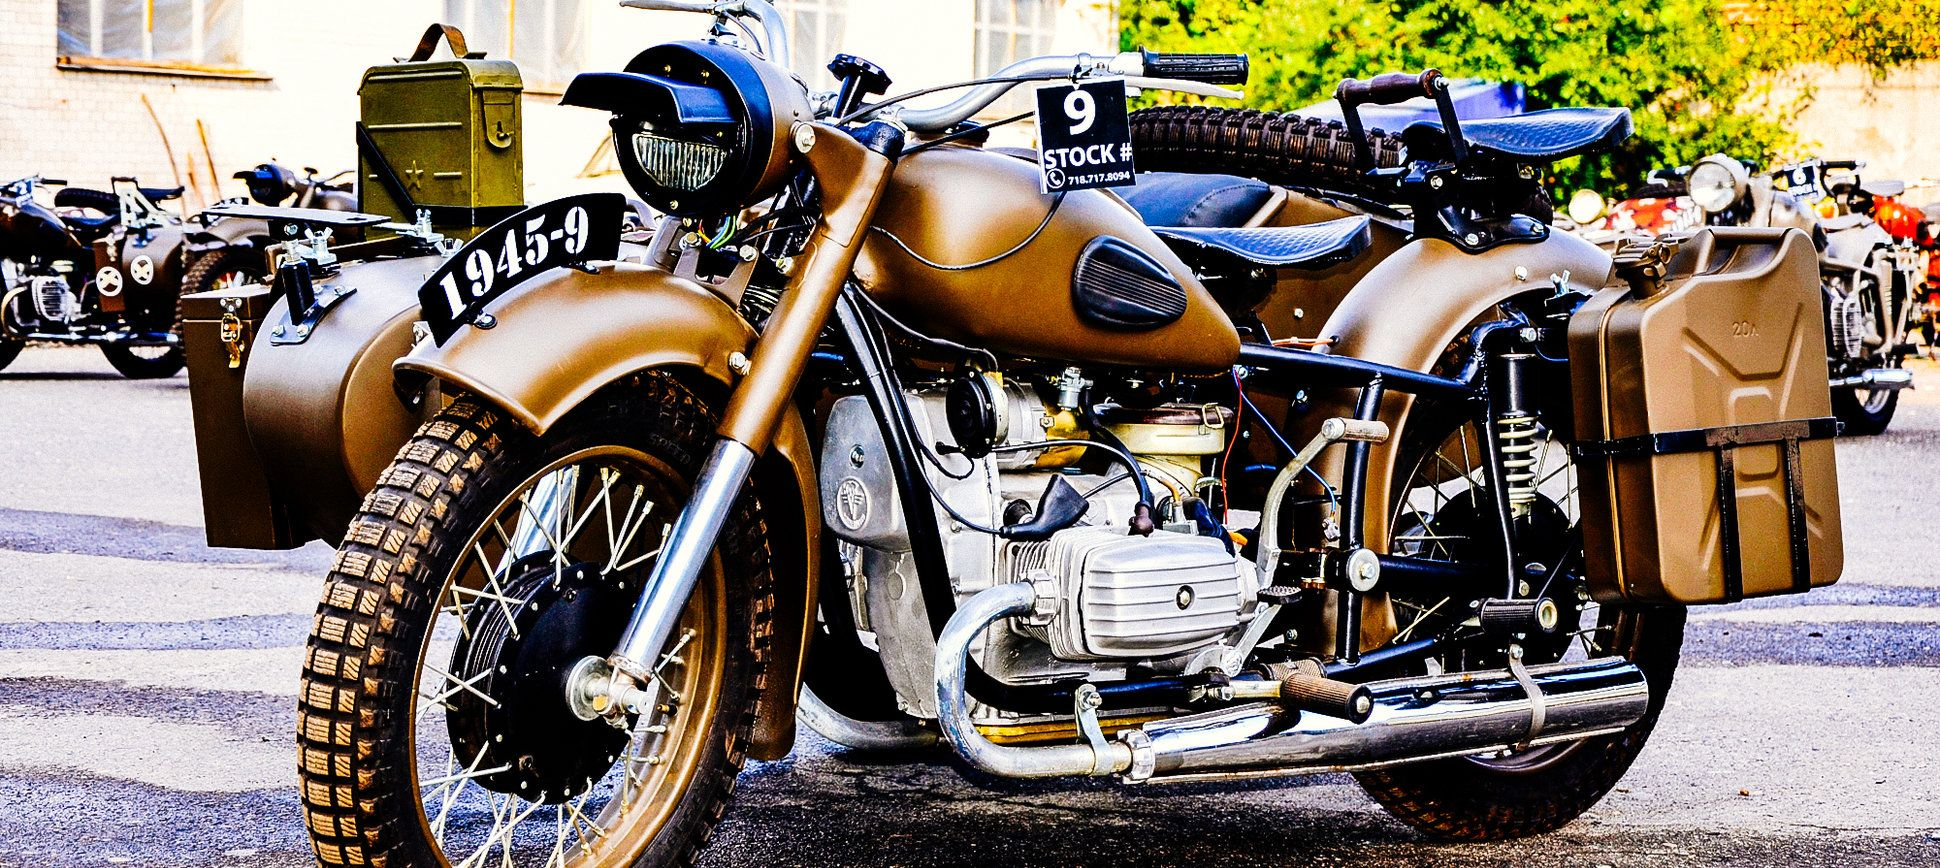 The Best Vintage Motorcycles For Sale On Ebay 12 30 14 Vintage Motorcycles For Sale Motorcycle Vintage Motorcycles